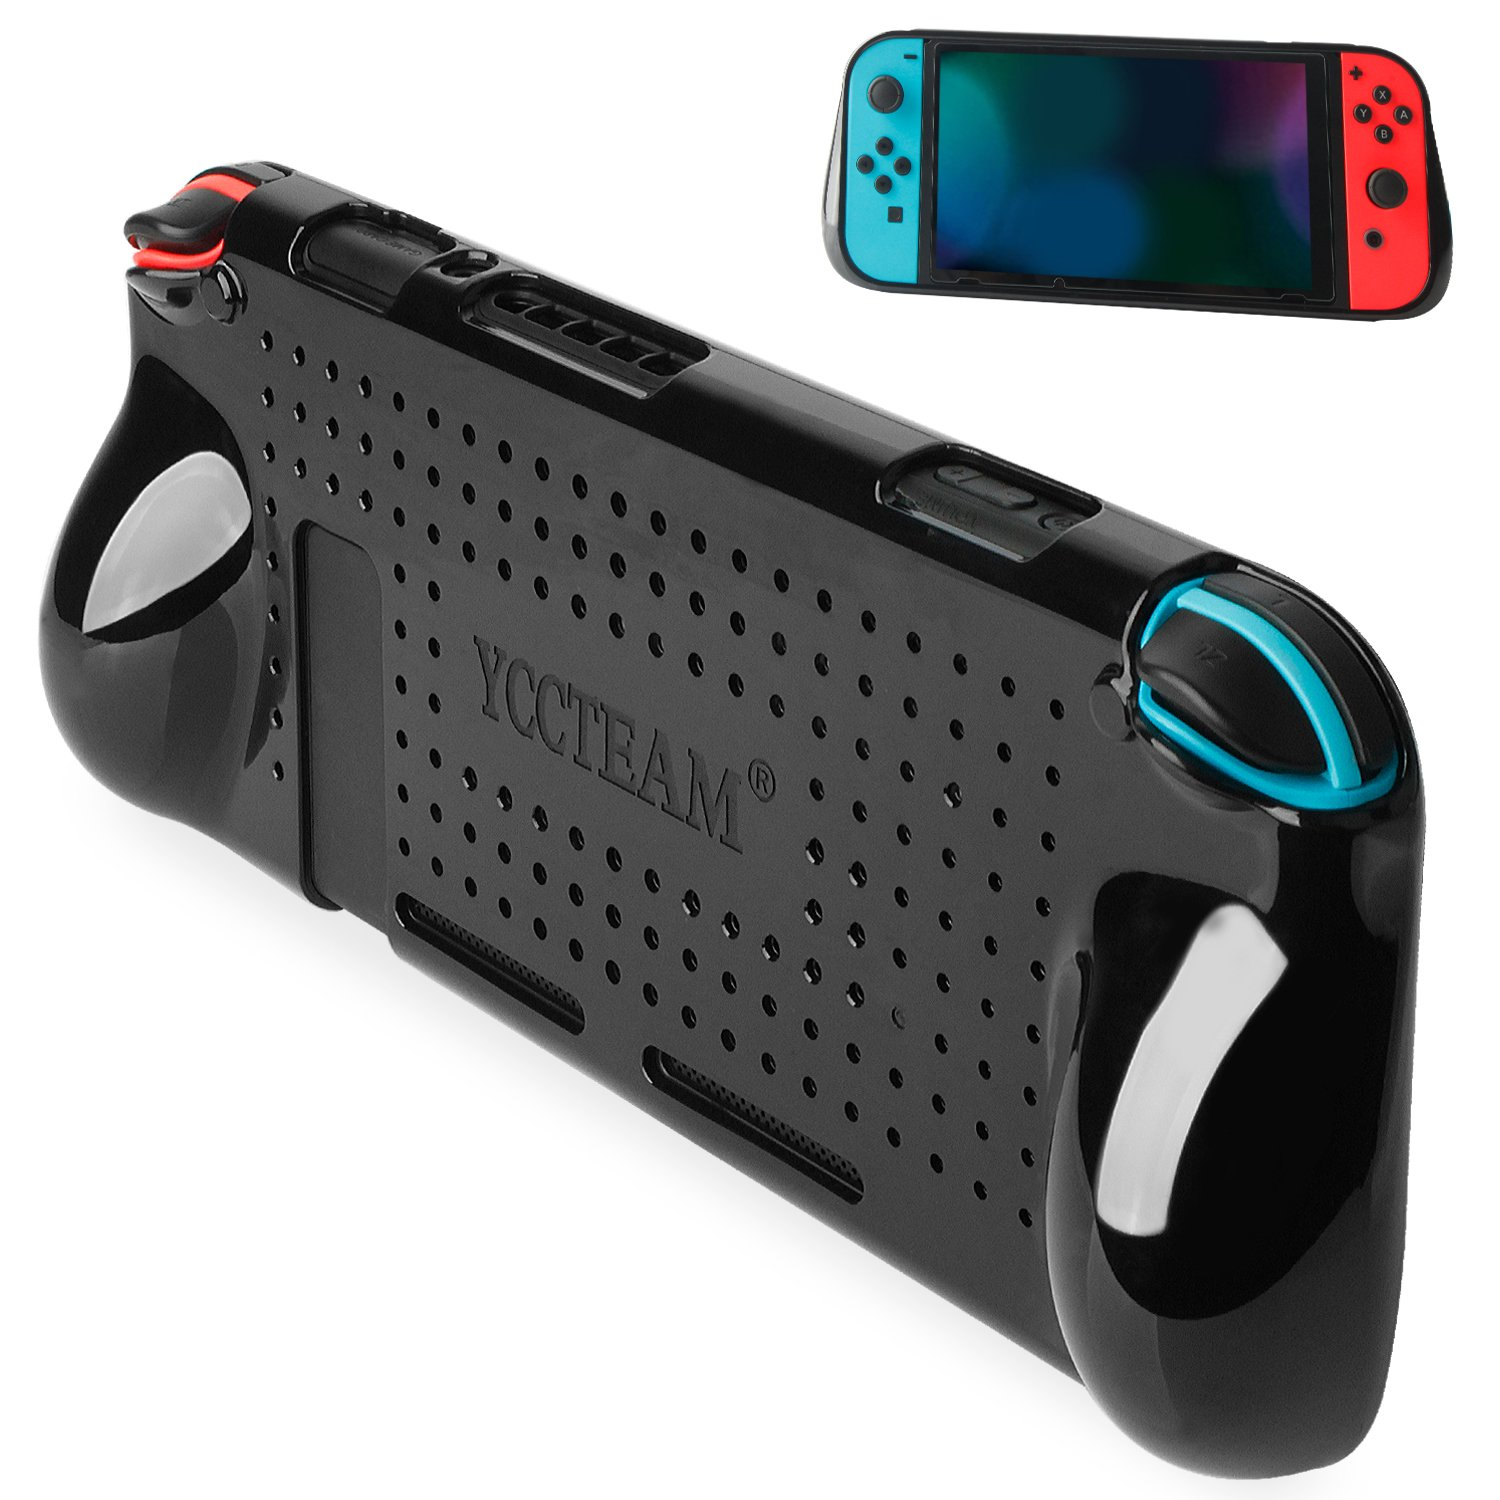 Switch Cover Protector, Heat Dissipation Comfortable Shock Protective Case for Nintendo Switch Grip, Slim and Light